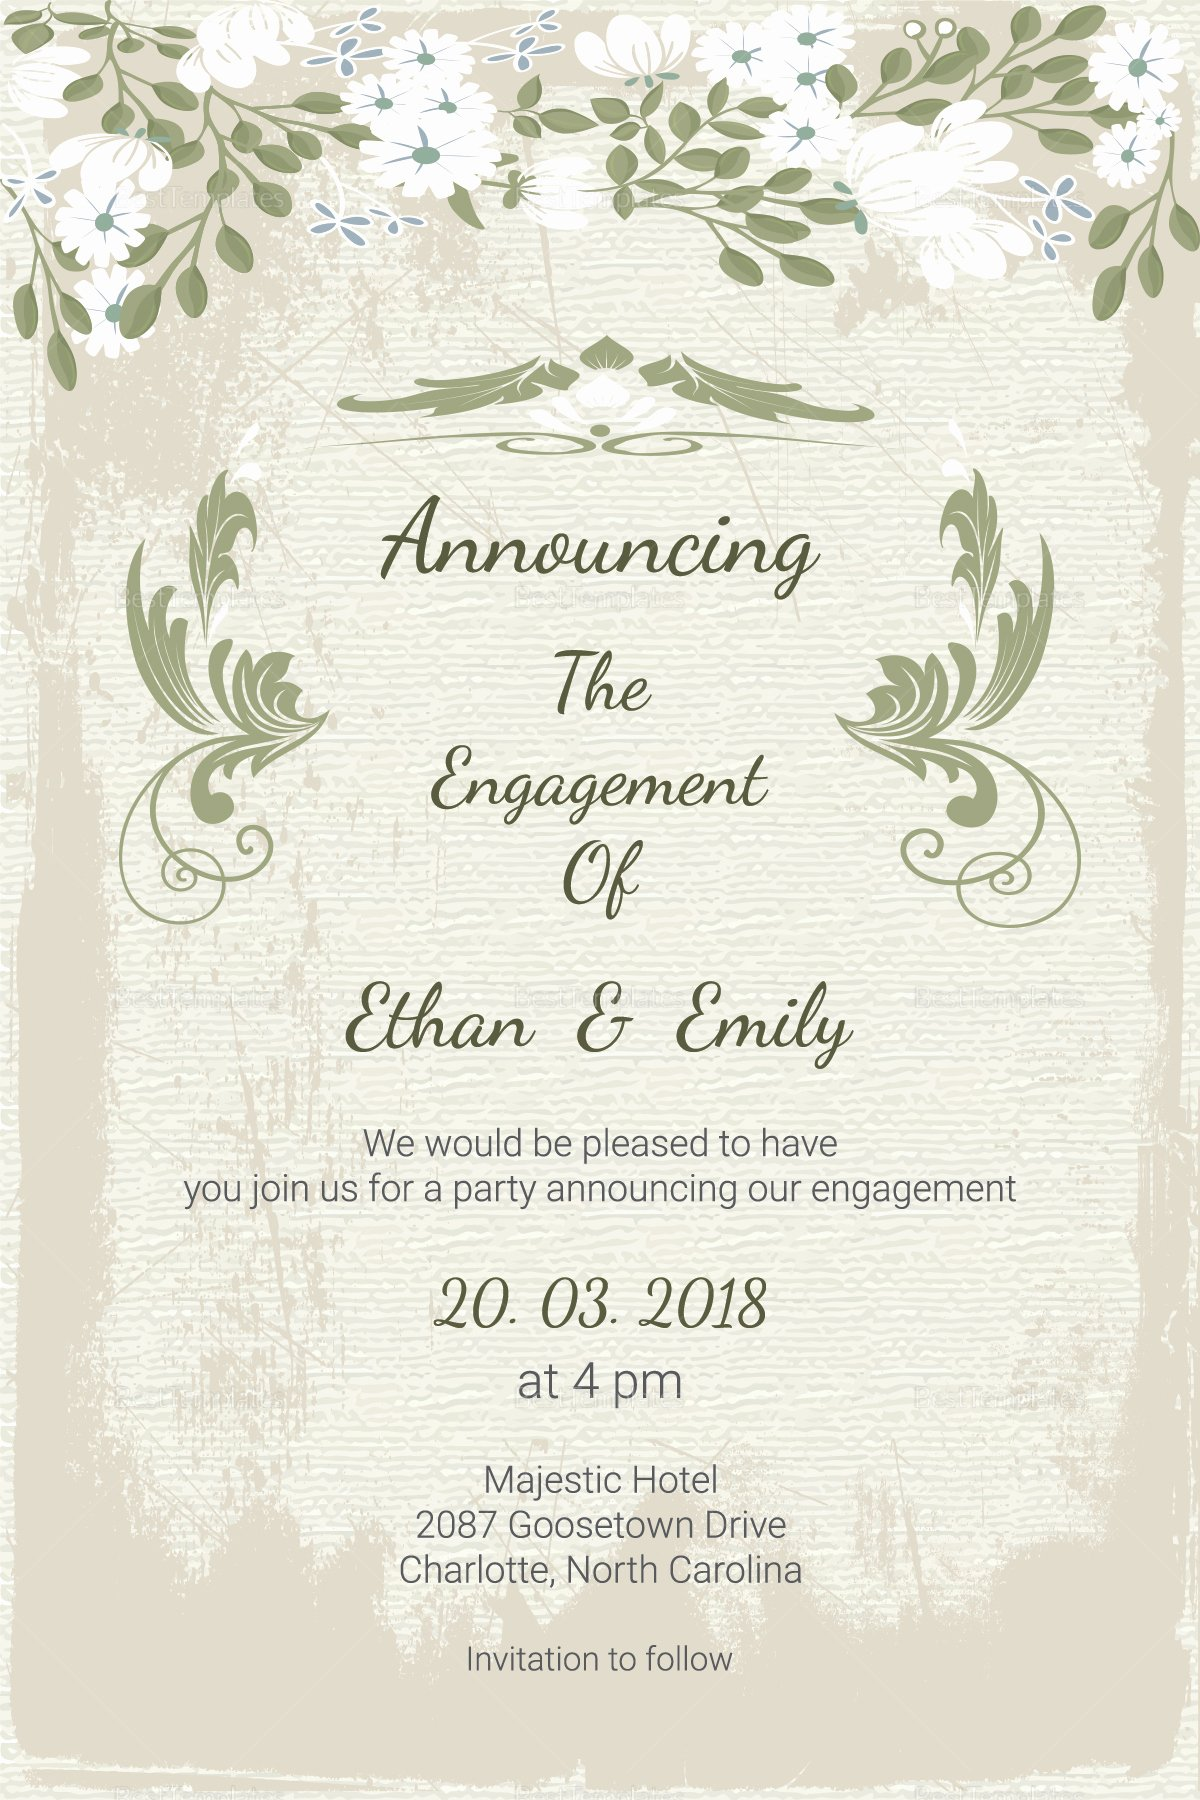 Newspaper Wedding Announcement Template Lovely Vintage Engagement Announcement Card Template In Psd Word